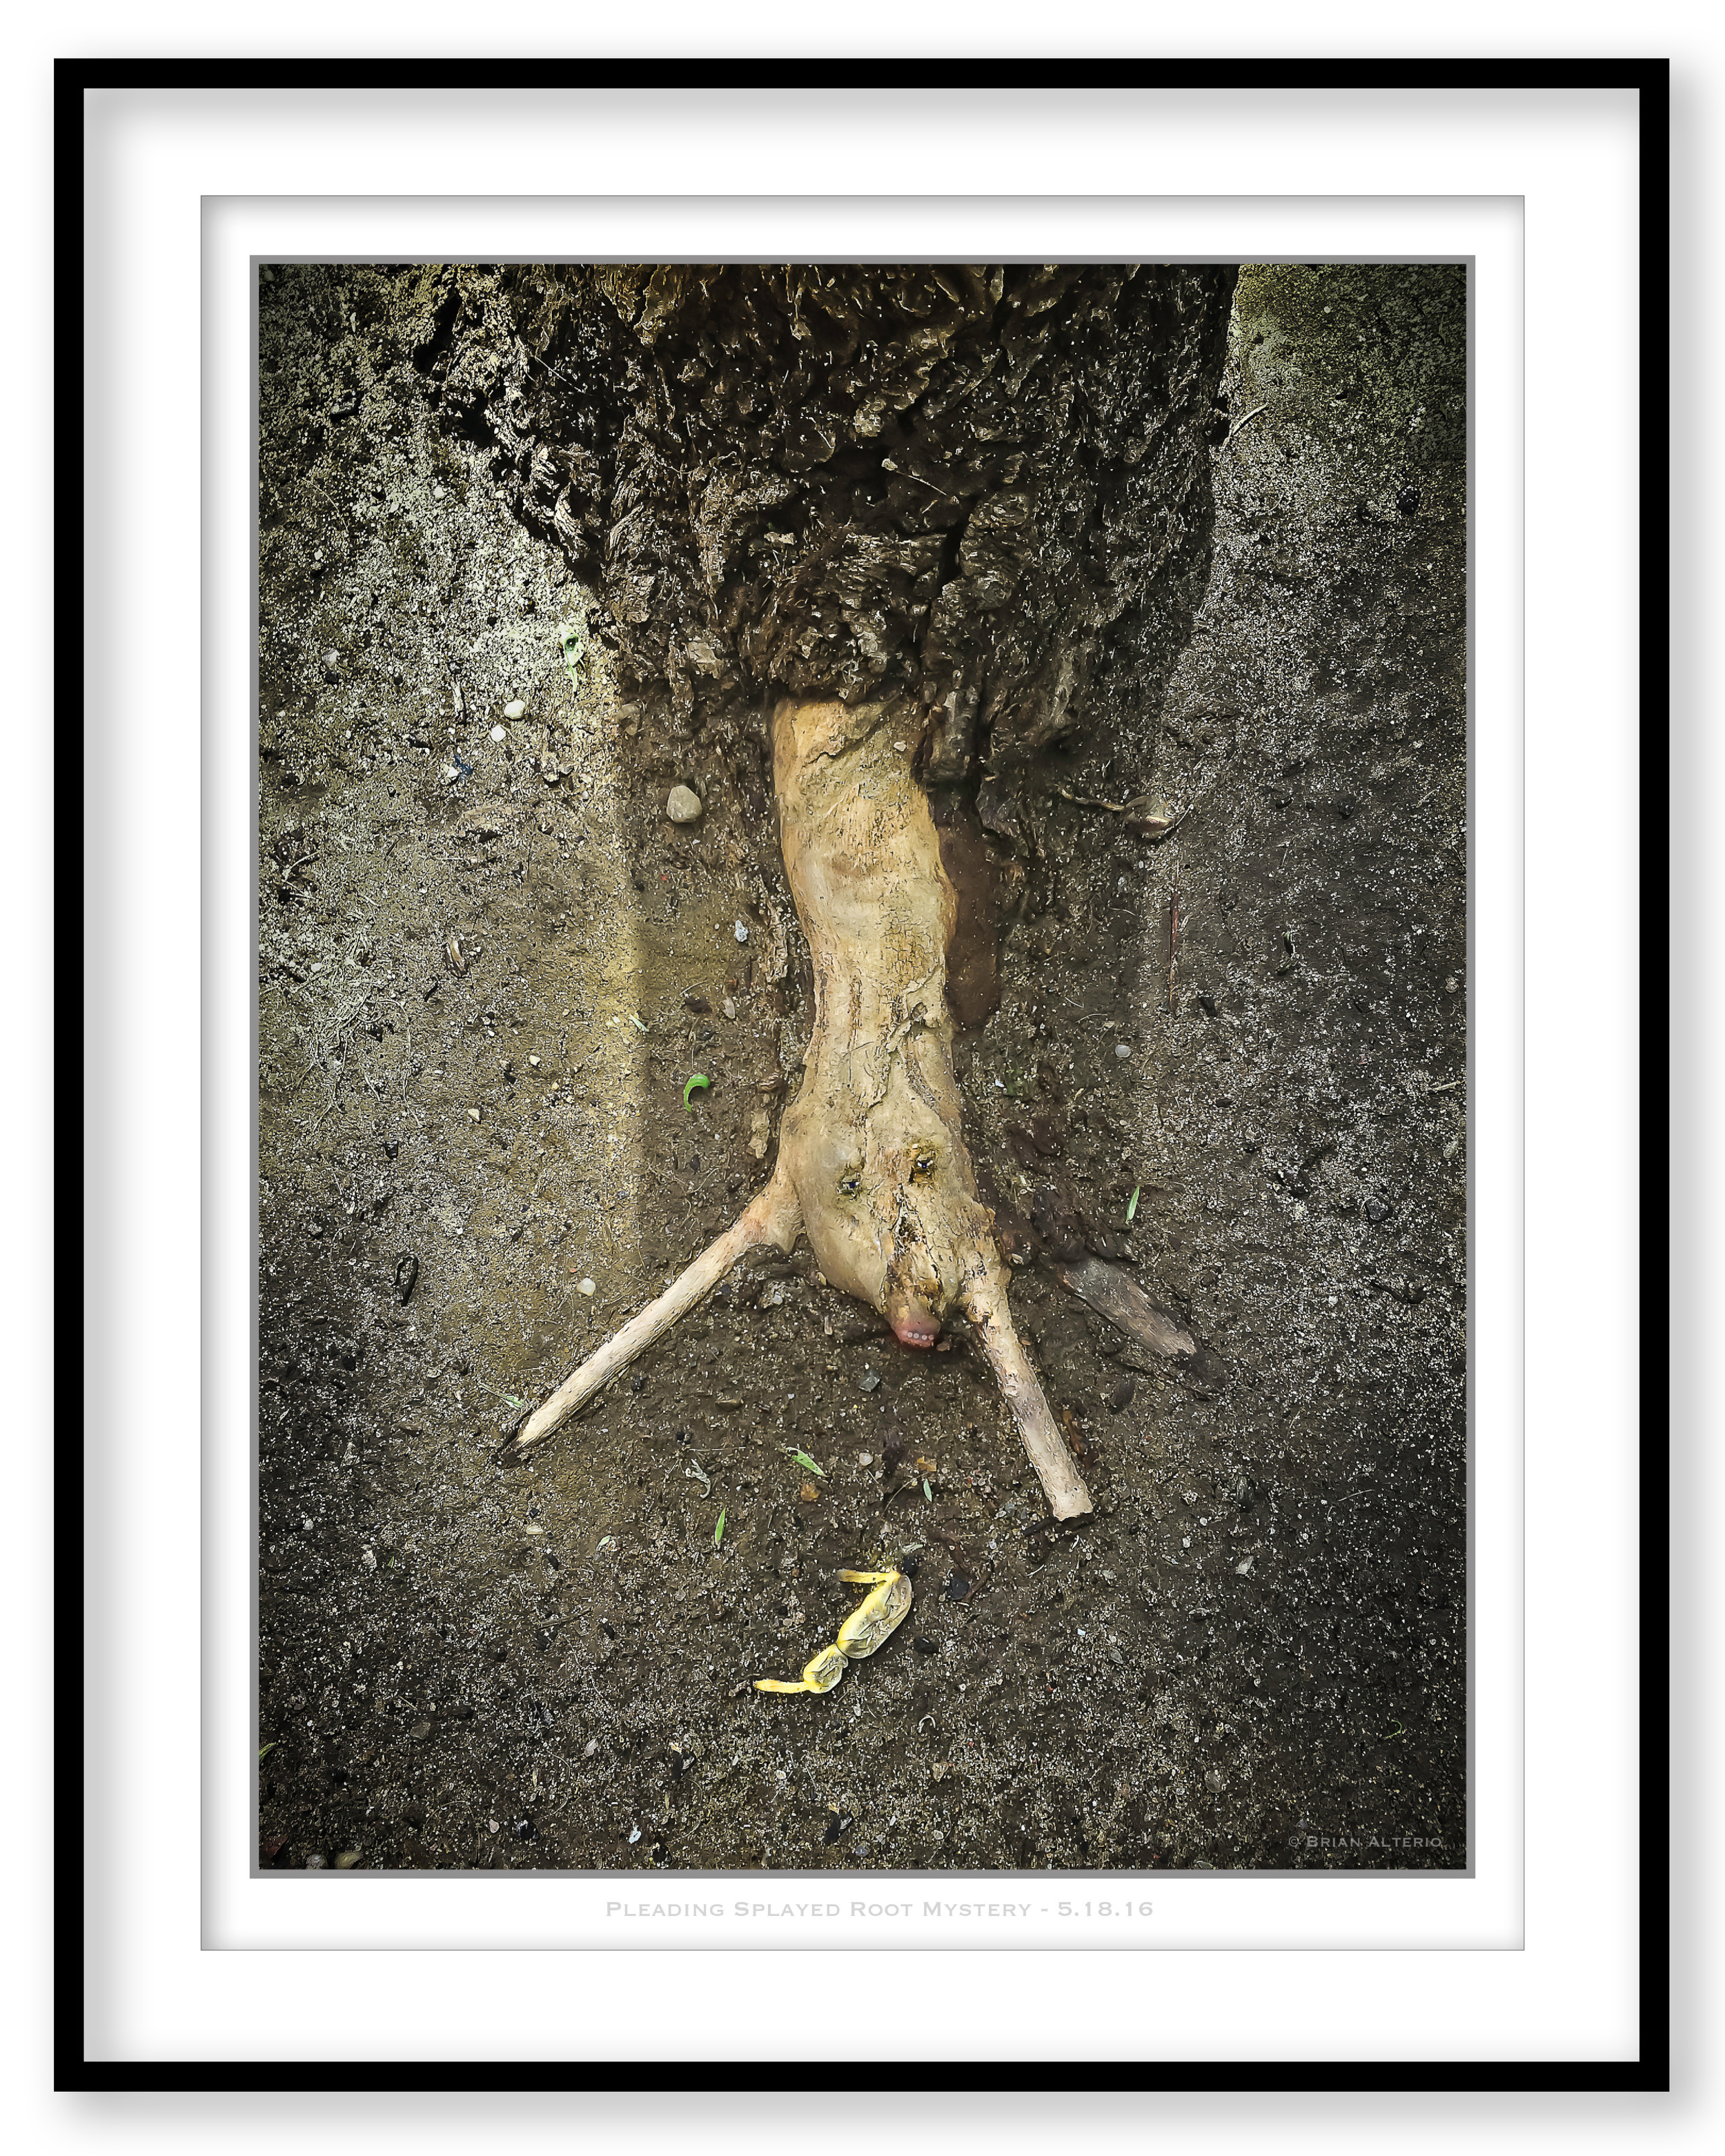 Pleading Splayed Root Mystery - Framed.jpg